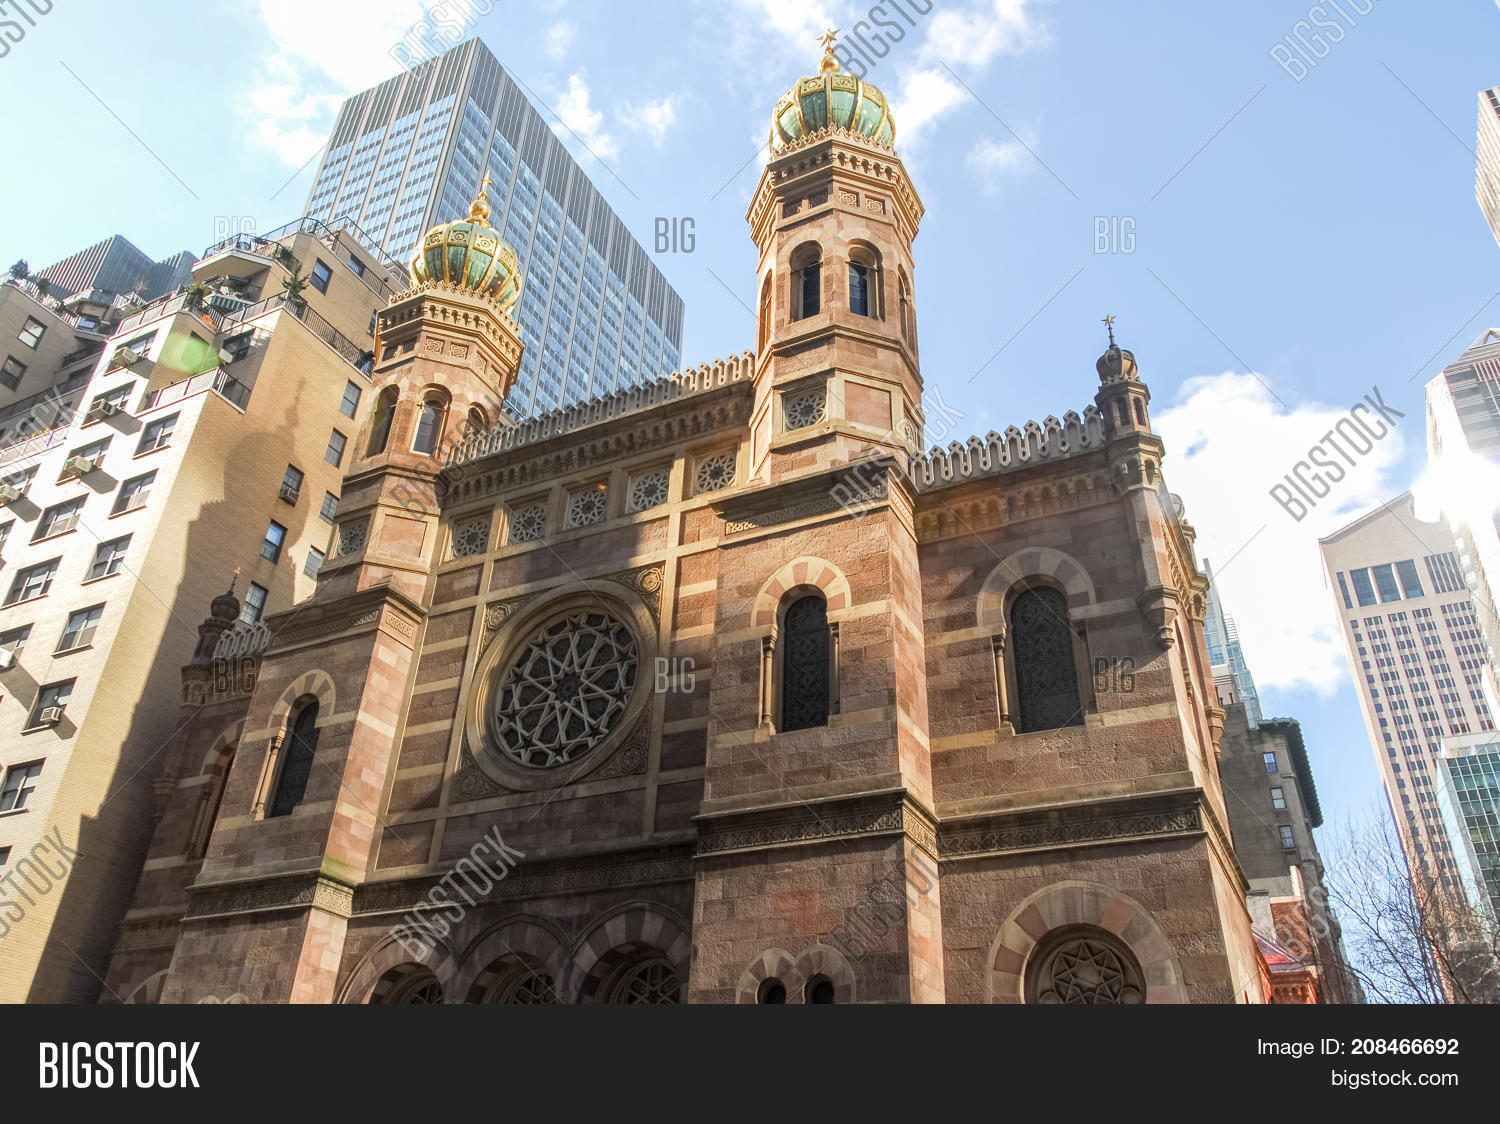 Central Synagogue - Image & Photo (Free Trial) | Bigstock